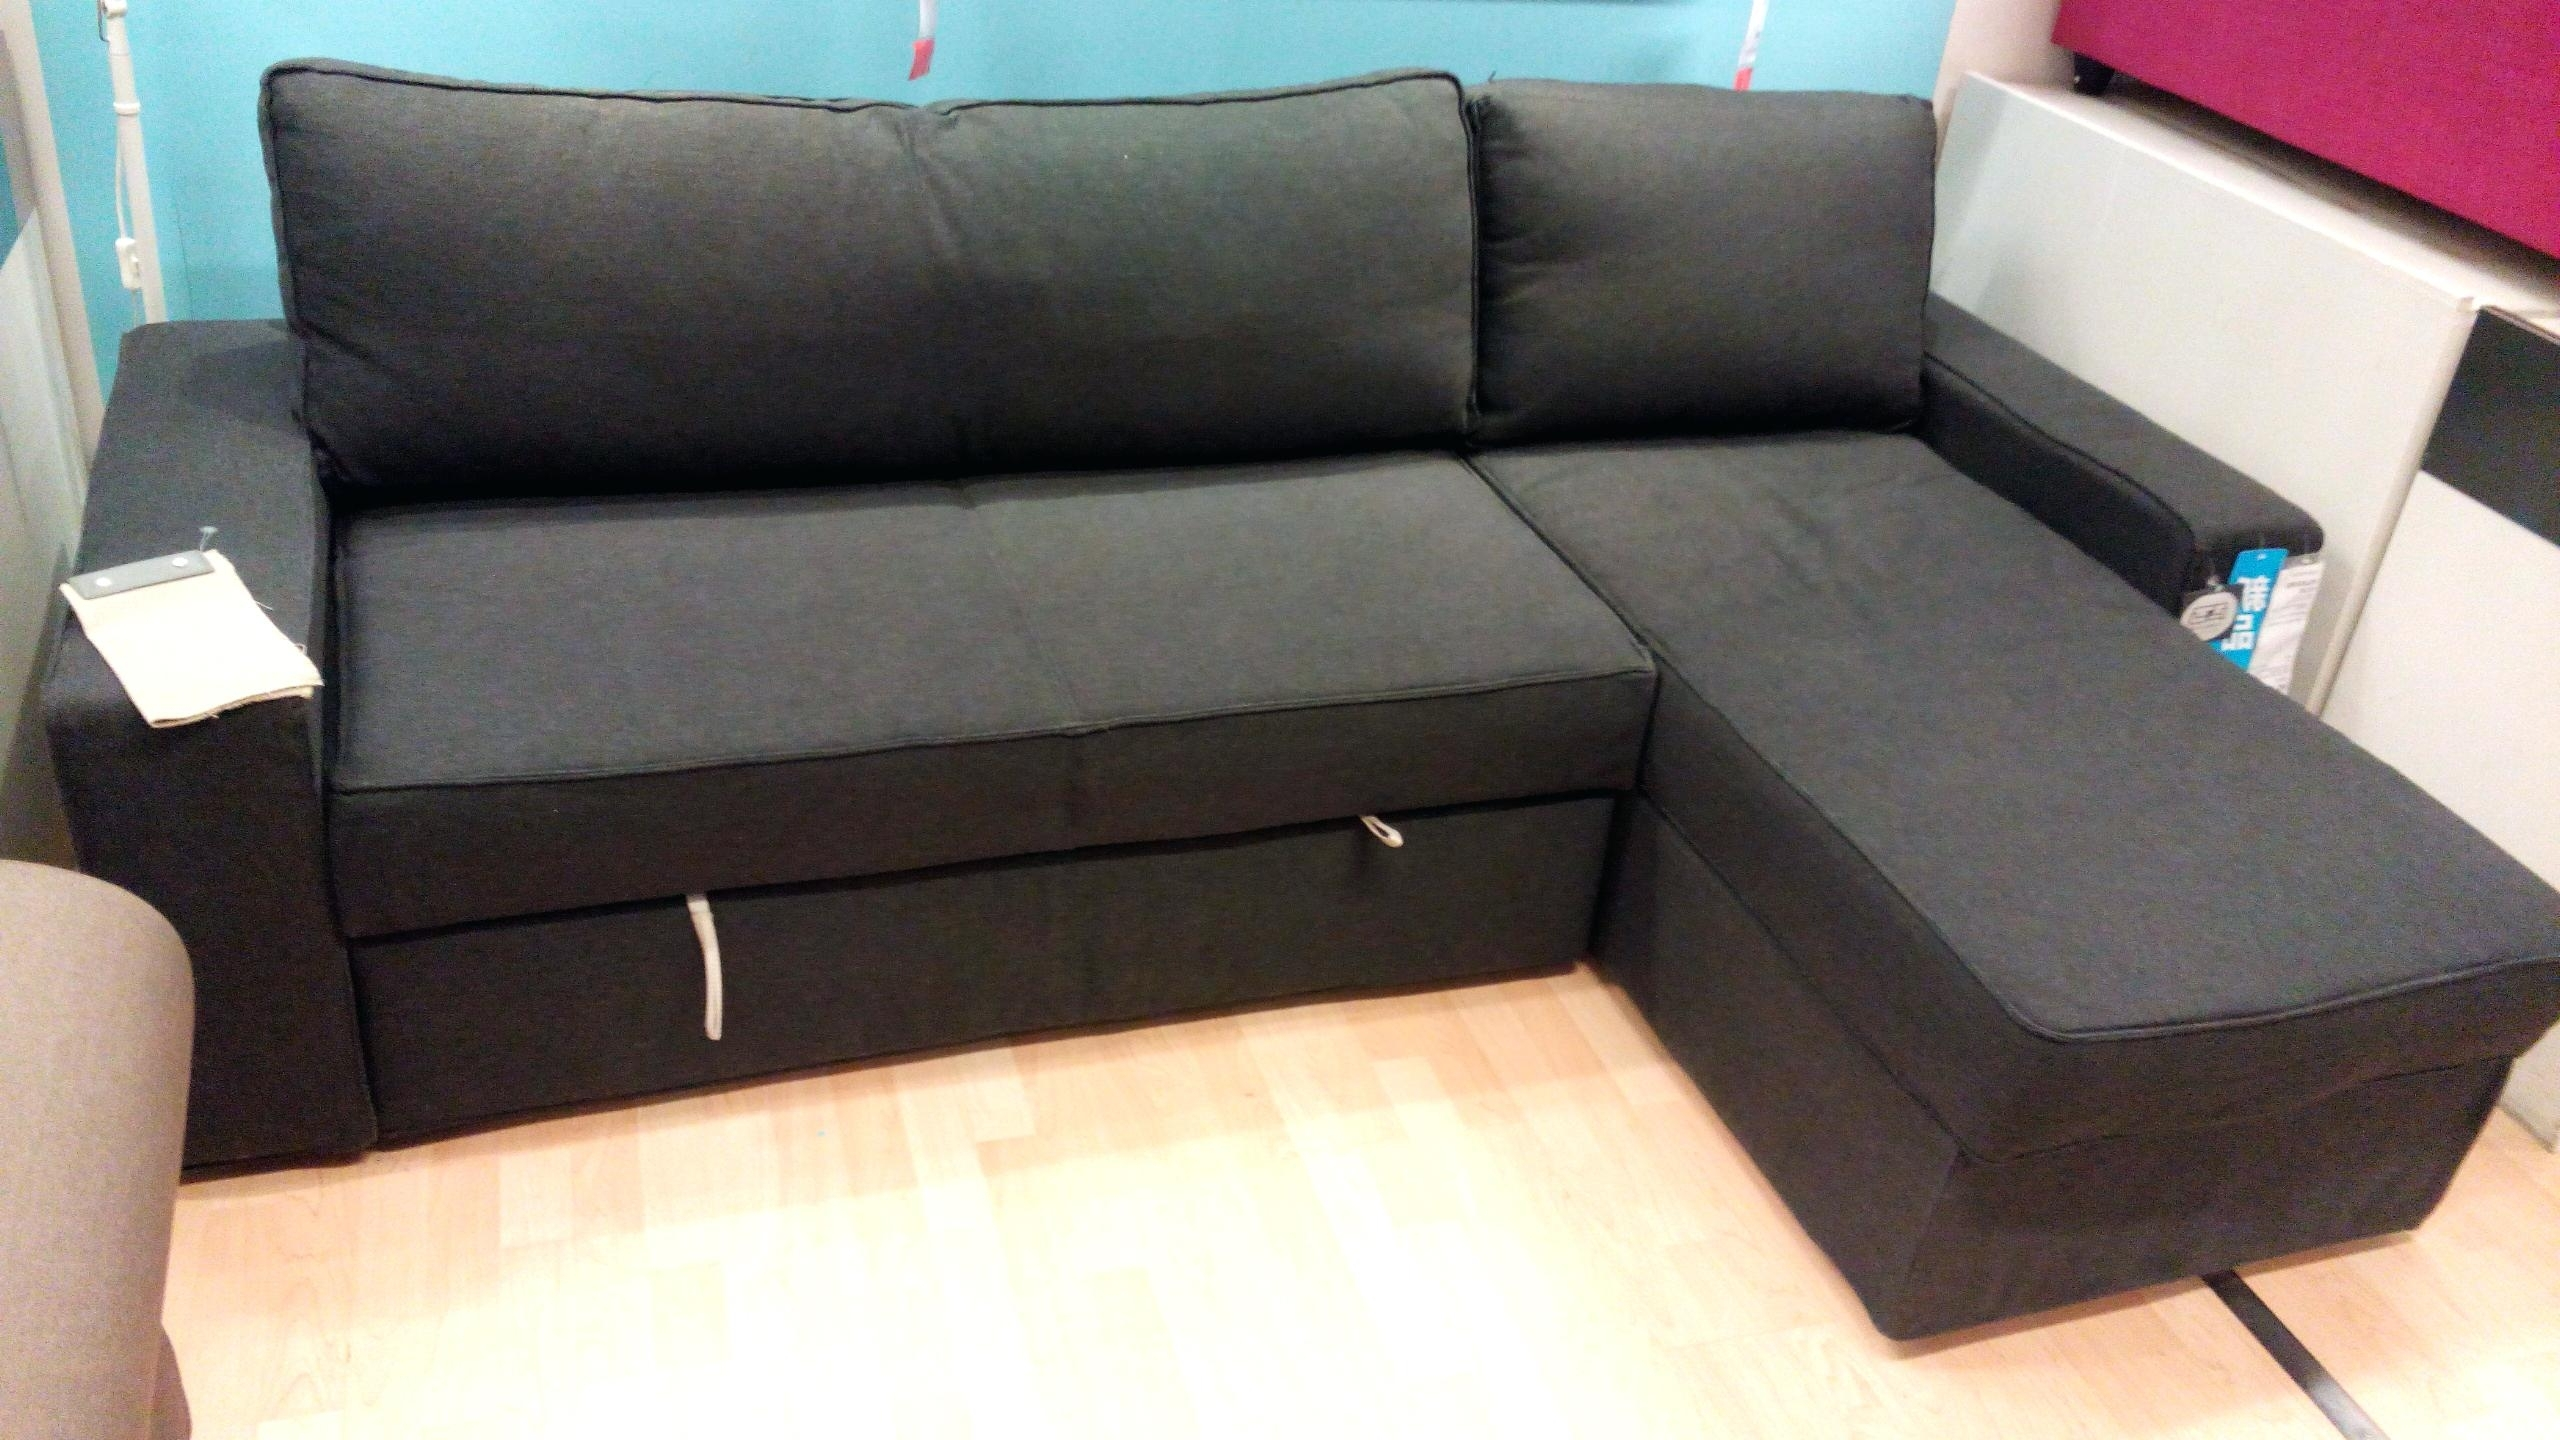 Widely Used Karlstad Chaise Covers Pertaining To Ideas Of Karlstad Chaise Cover Also Articles With Karlstad Chaise (View 10 of 15)